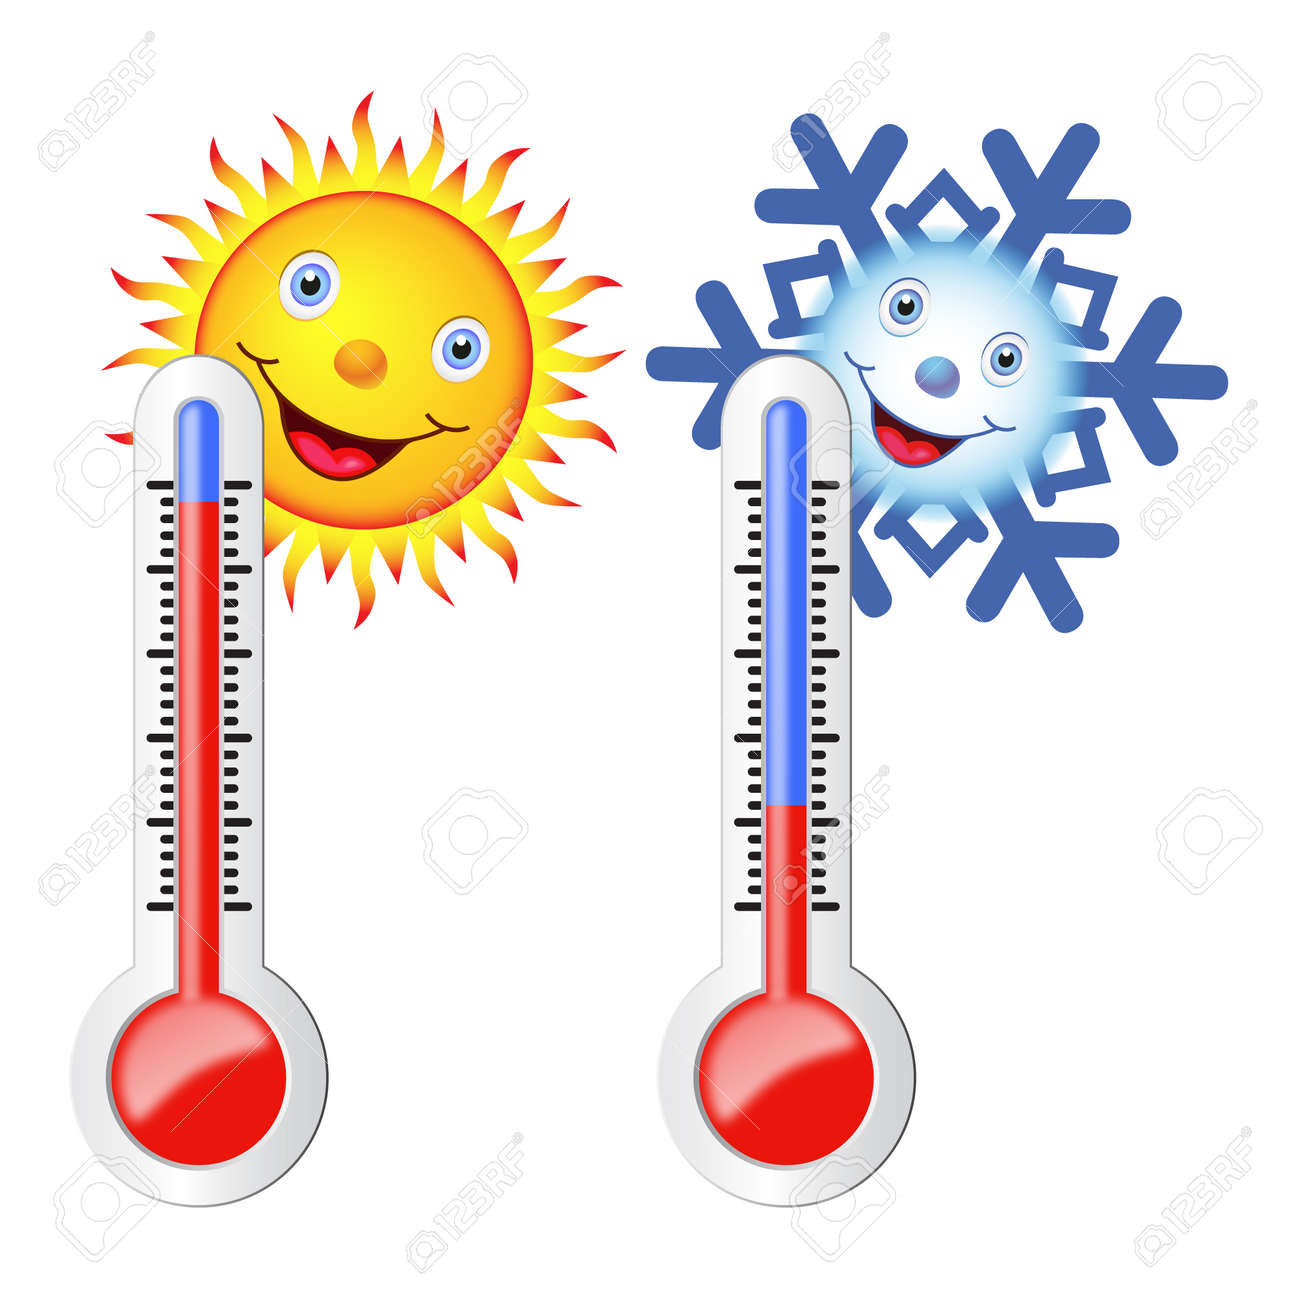 Two thermometers, high and low temperature. Sun and snowflake with a smile. Vector image. - 43885633